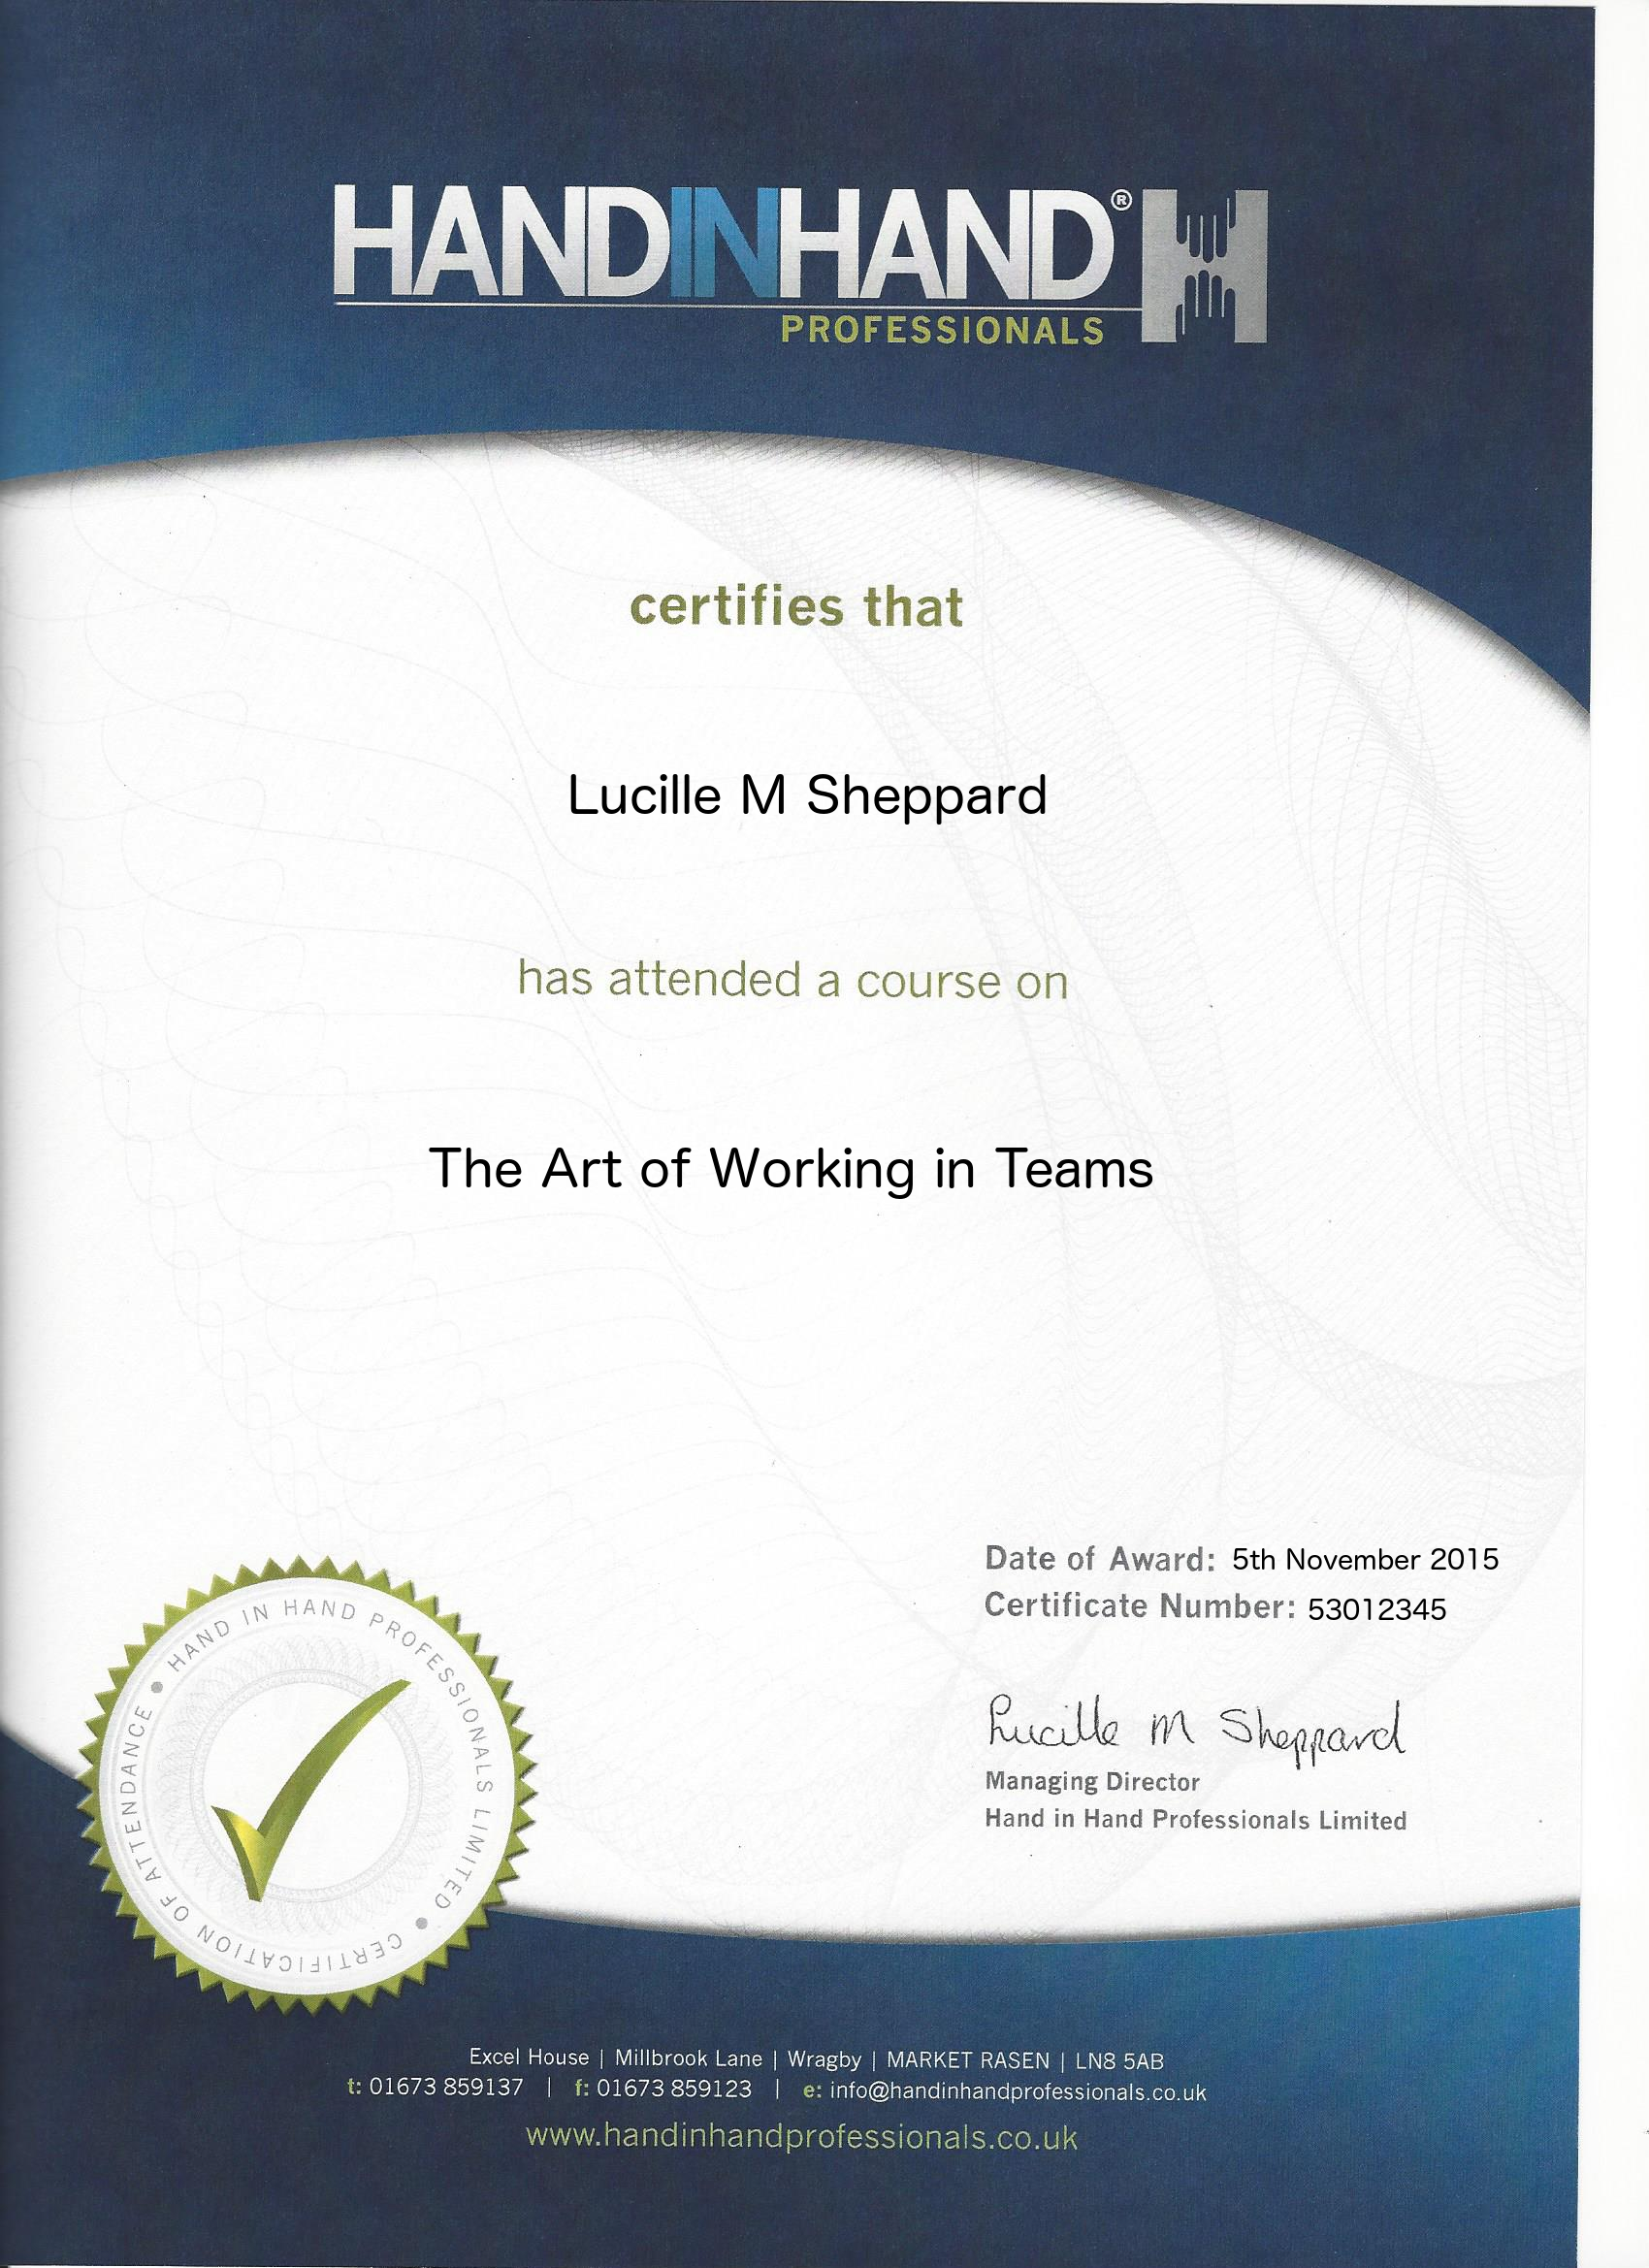 the art of working in teams course certificate